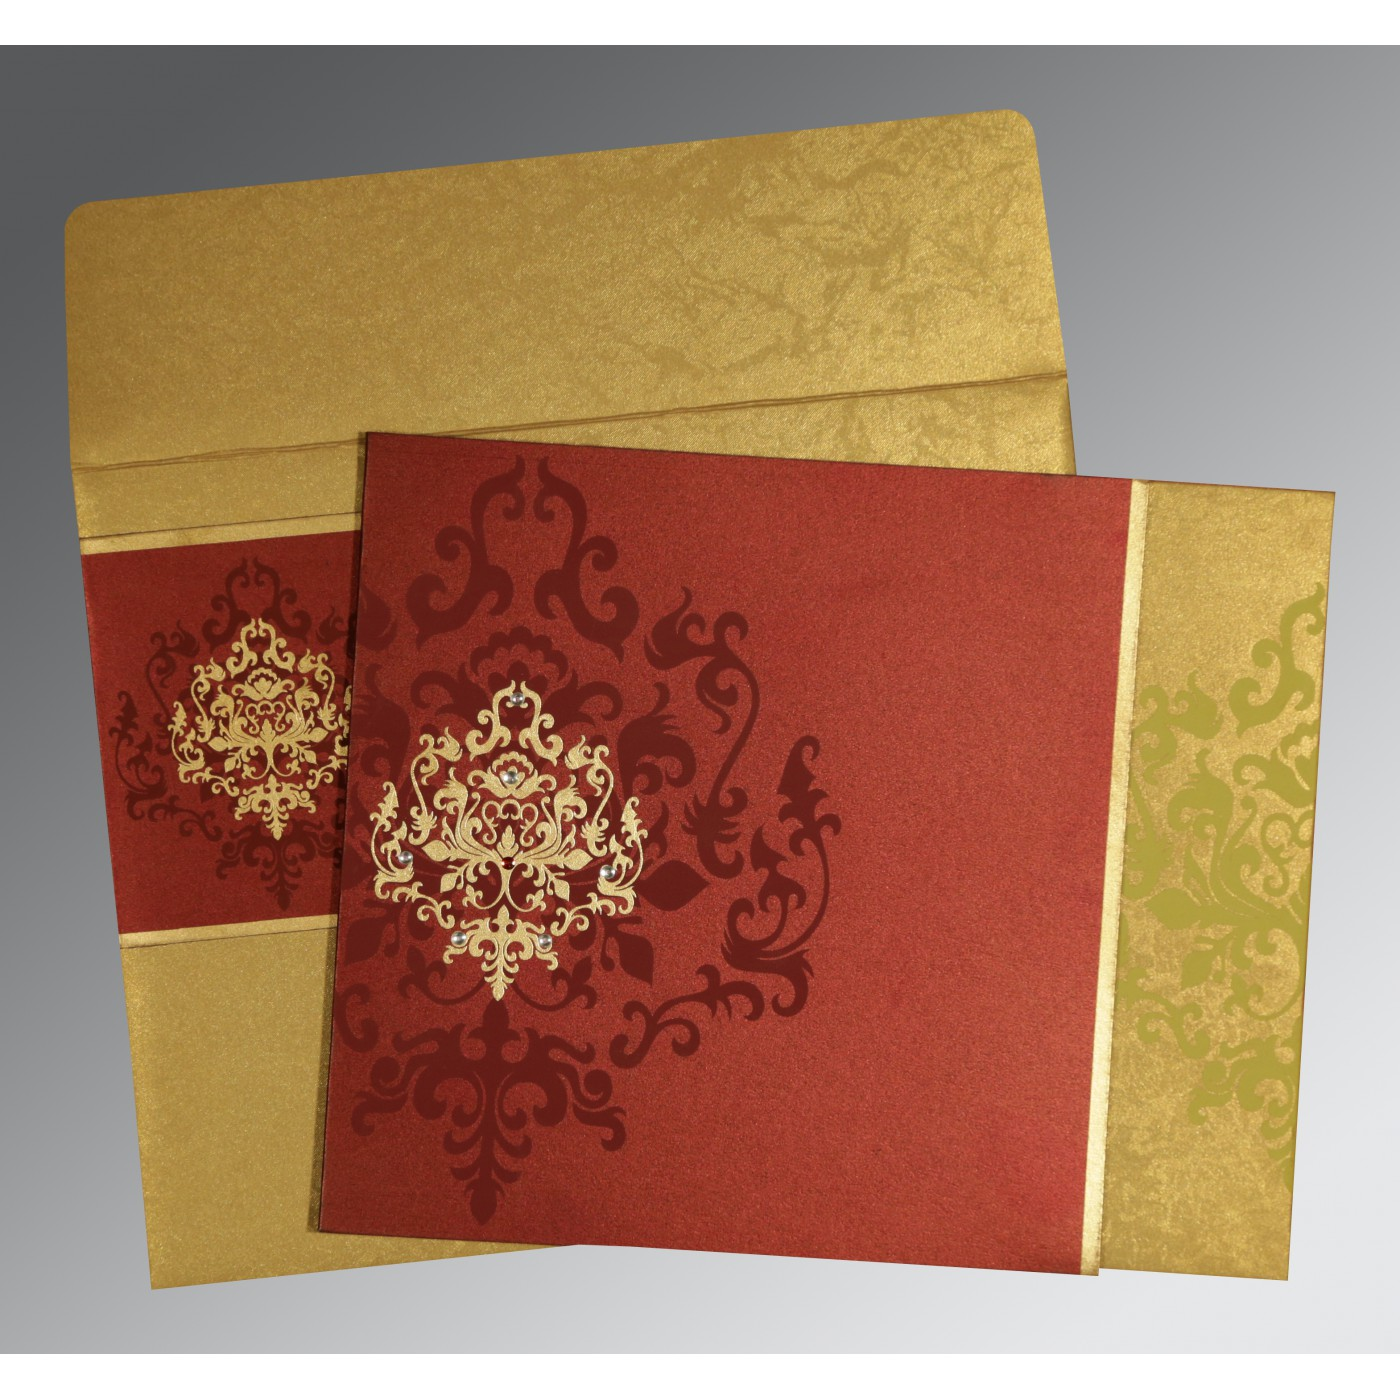 Outstanding Wedding Invitations Winery Theme Images - Invitations ...